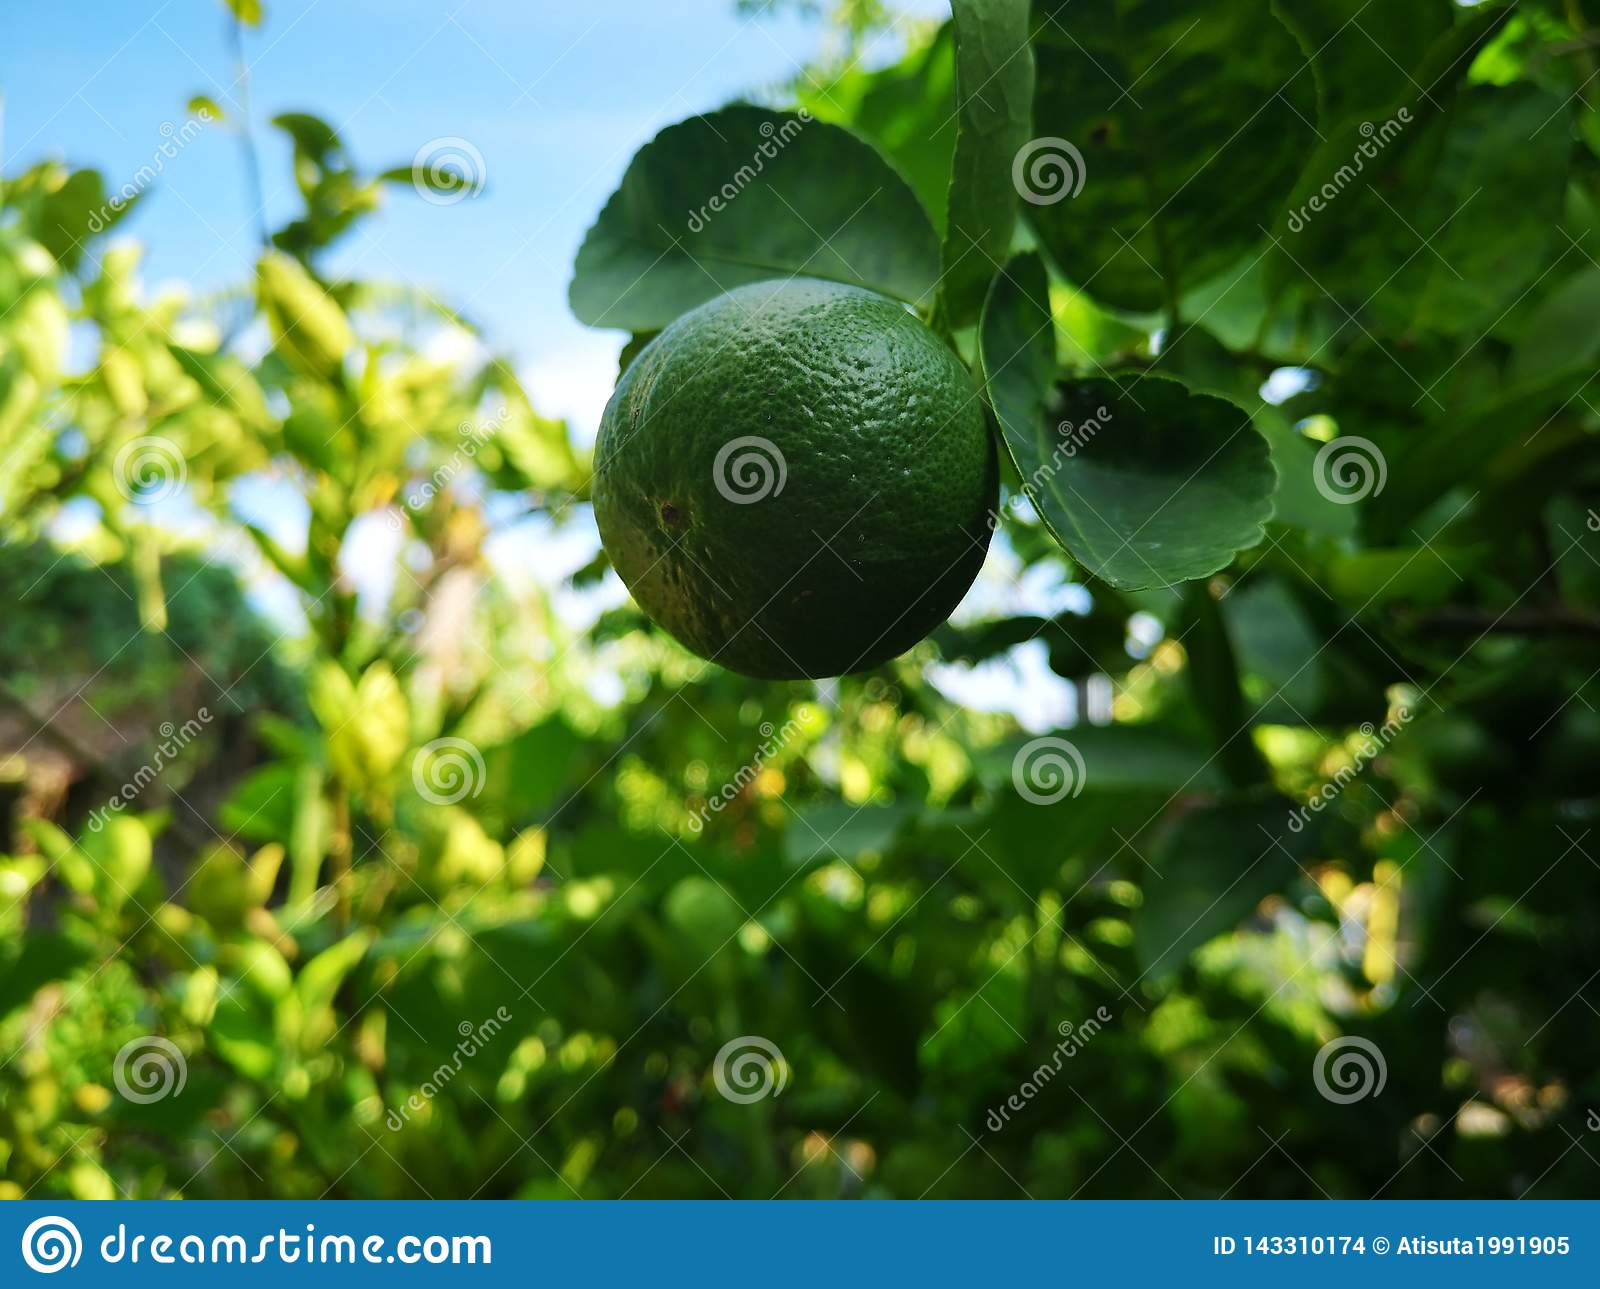 green​ lime, lemom tree​ plant​